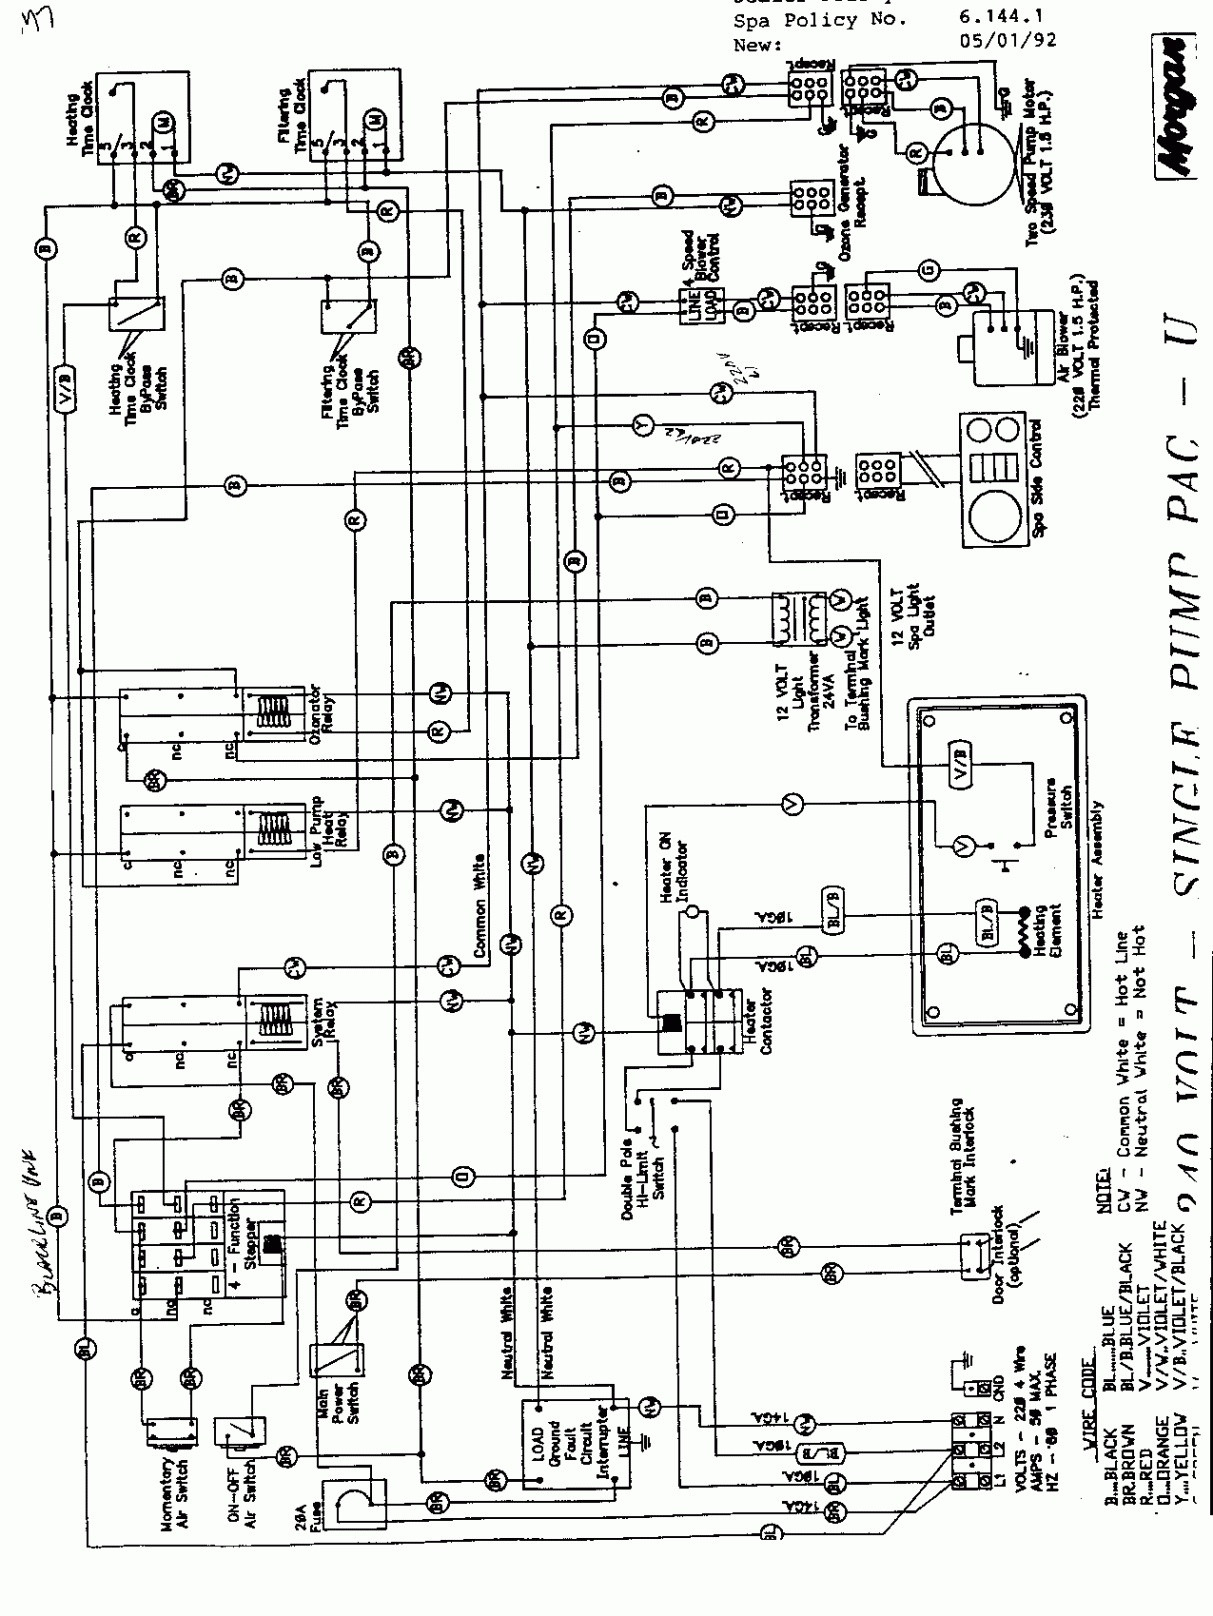 vita spa l200 wiring diagram Download-great lakes spa wiring diagram coleman spas with hot tub wire for rh natebird me Hot 2-h